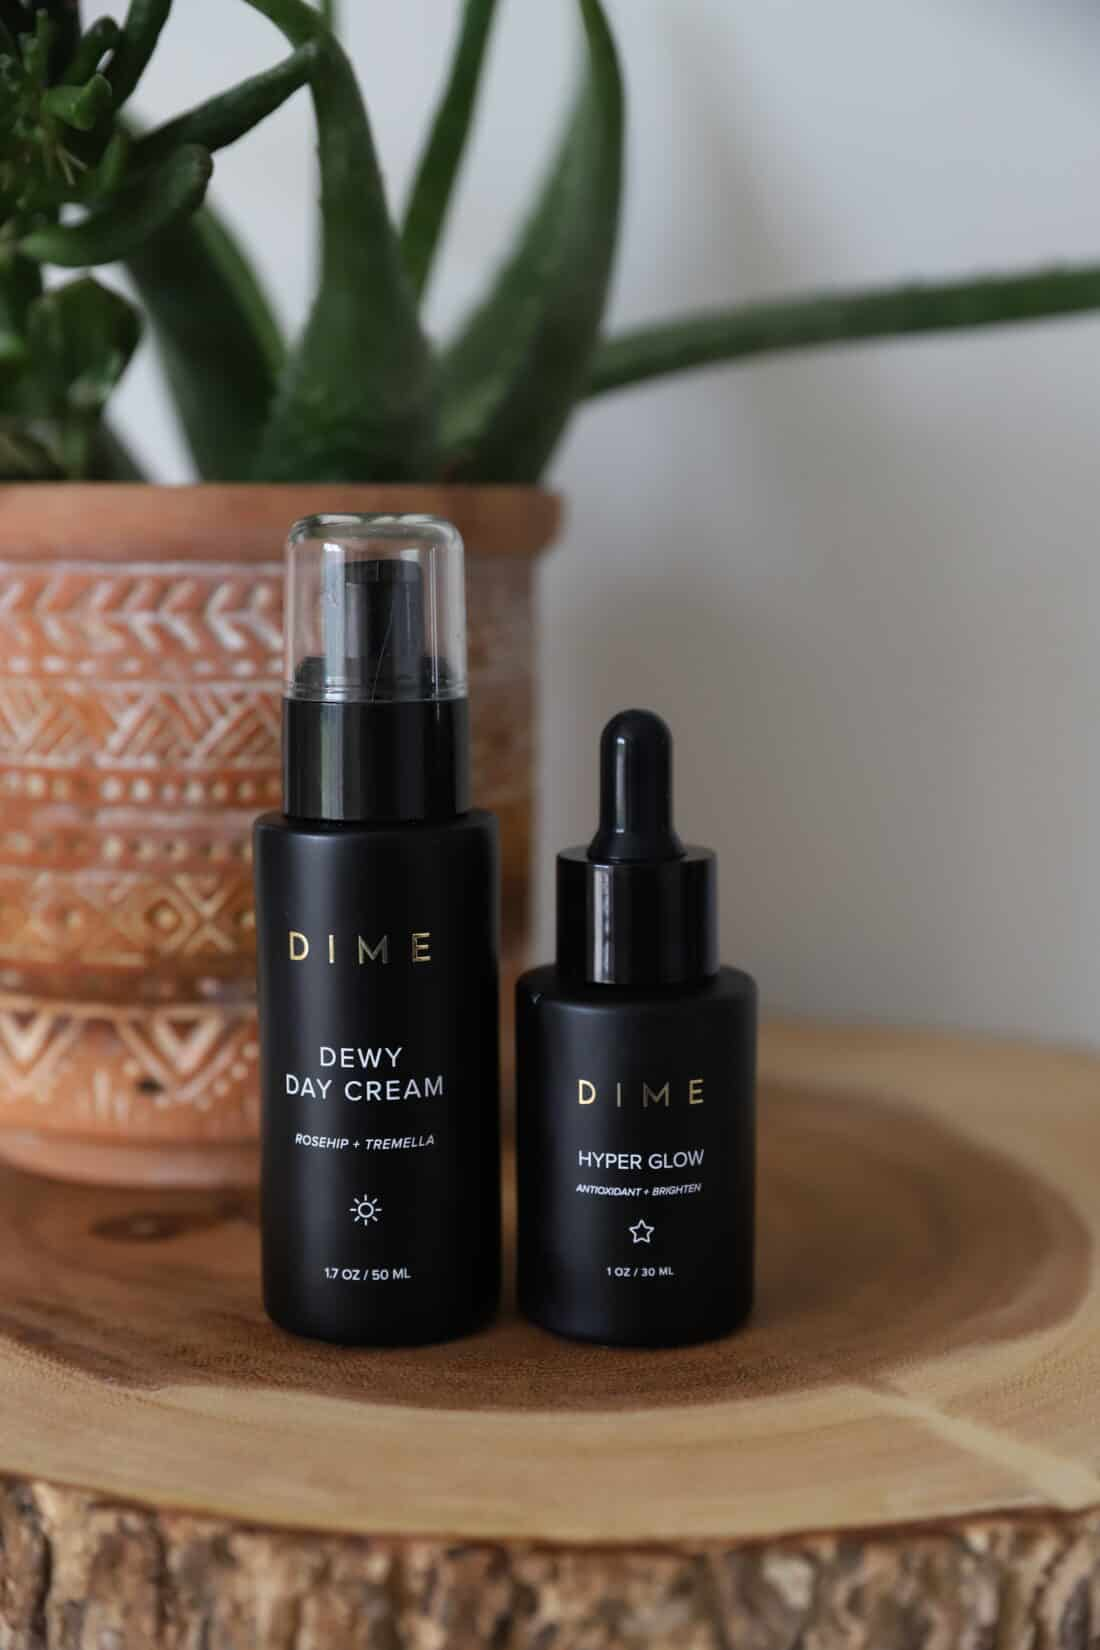 dime beauty morning skin care routine products